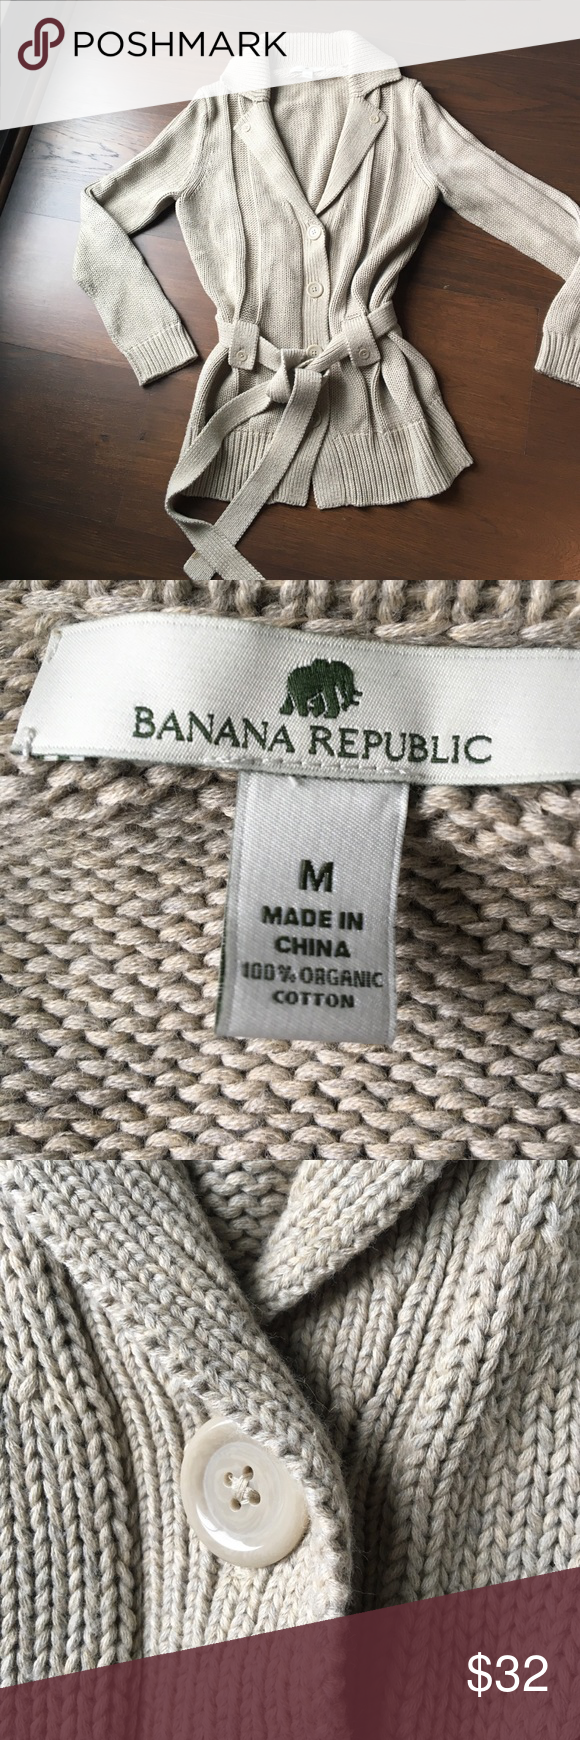 Banana Republic 100% cotton sweater - khaki color Worn once - buttoned cardigan with belt tie - organic cotton Banana Republic Sweaters Cardigans